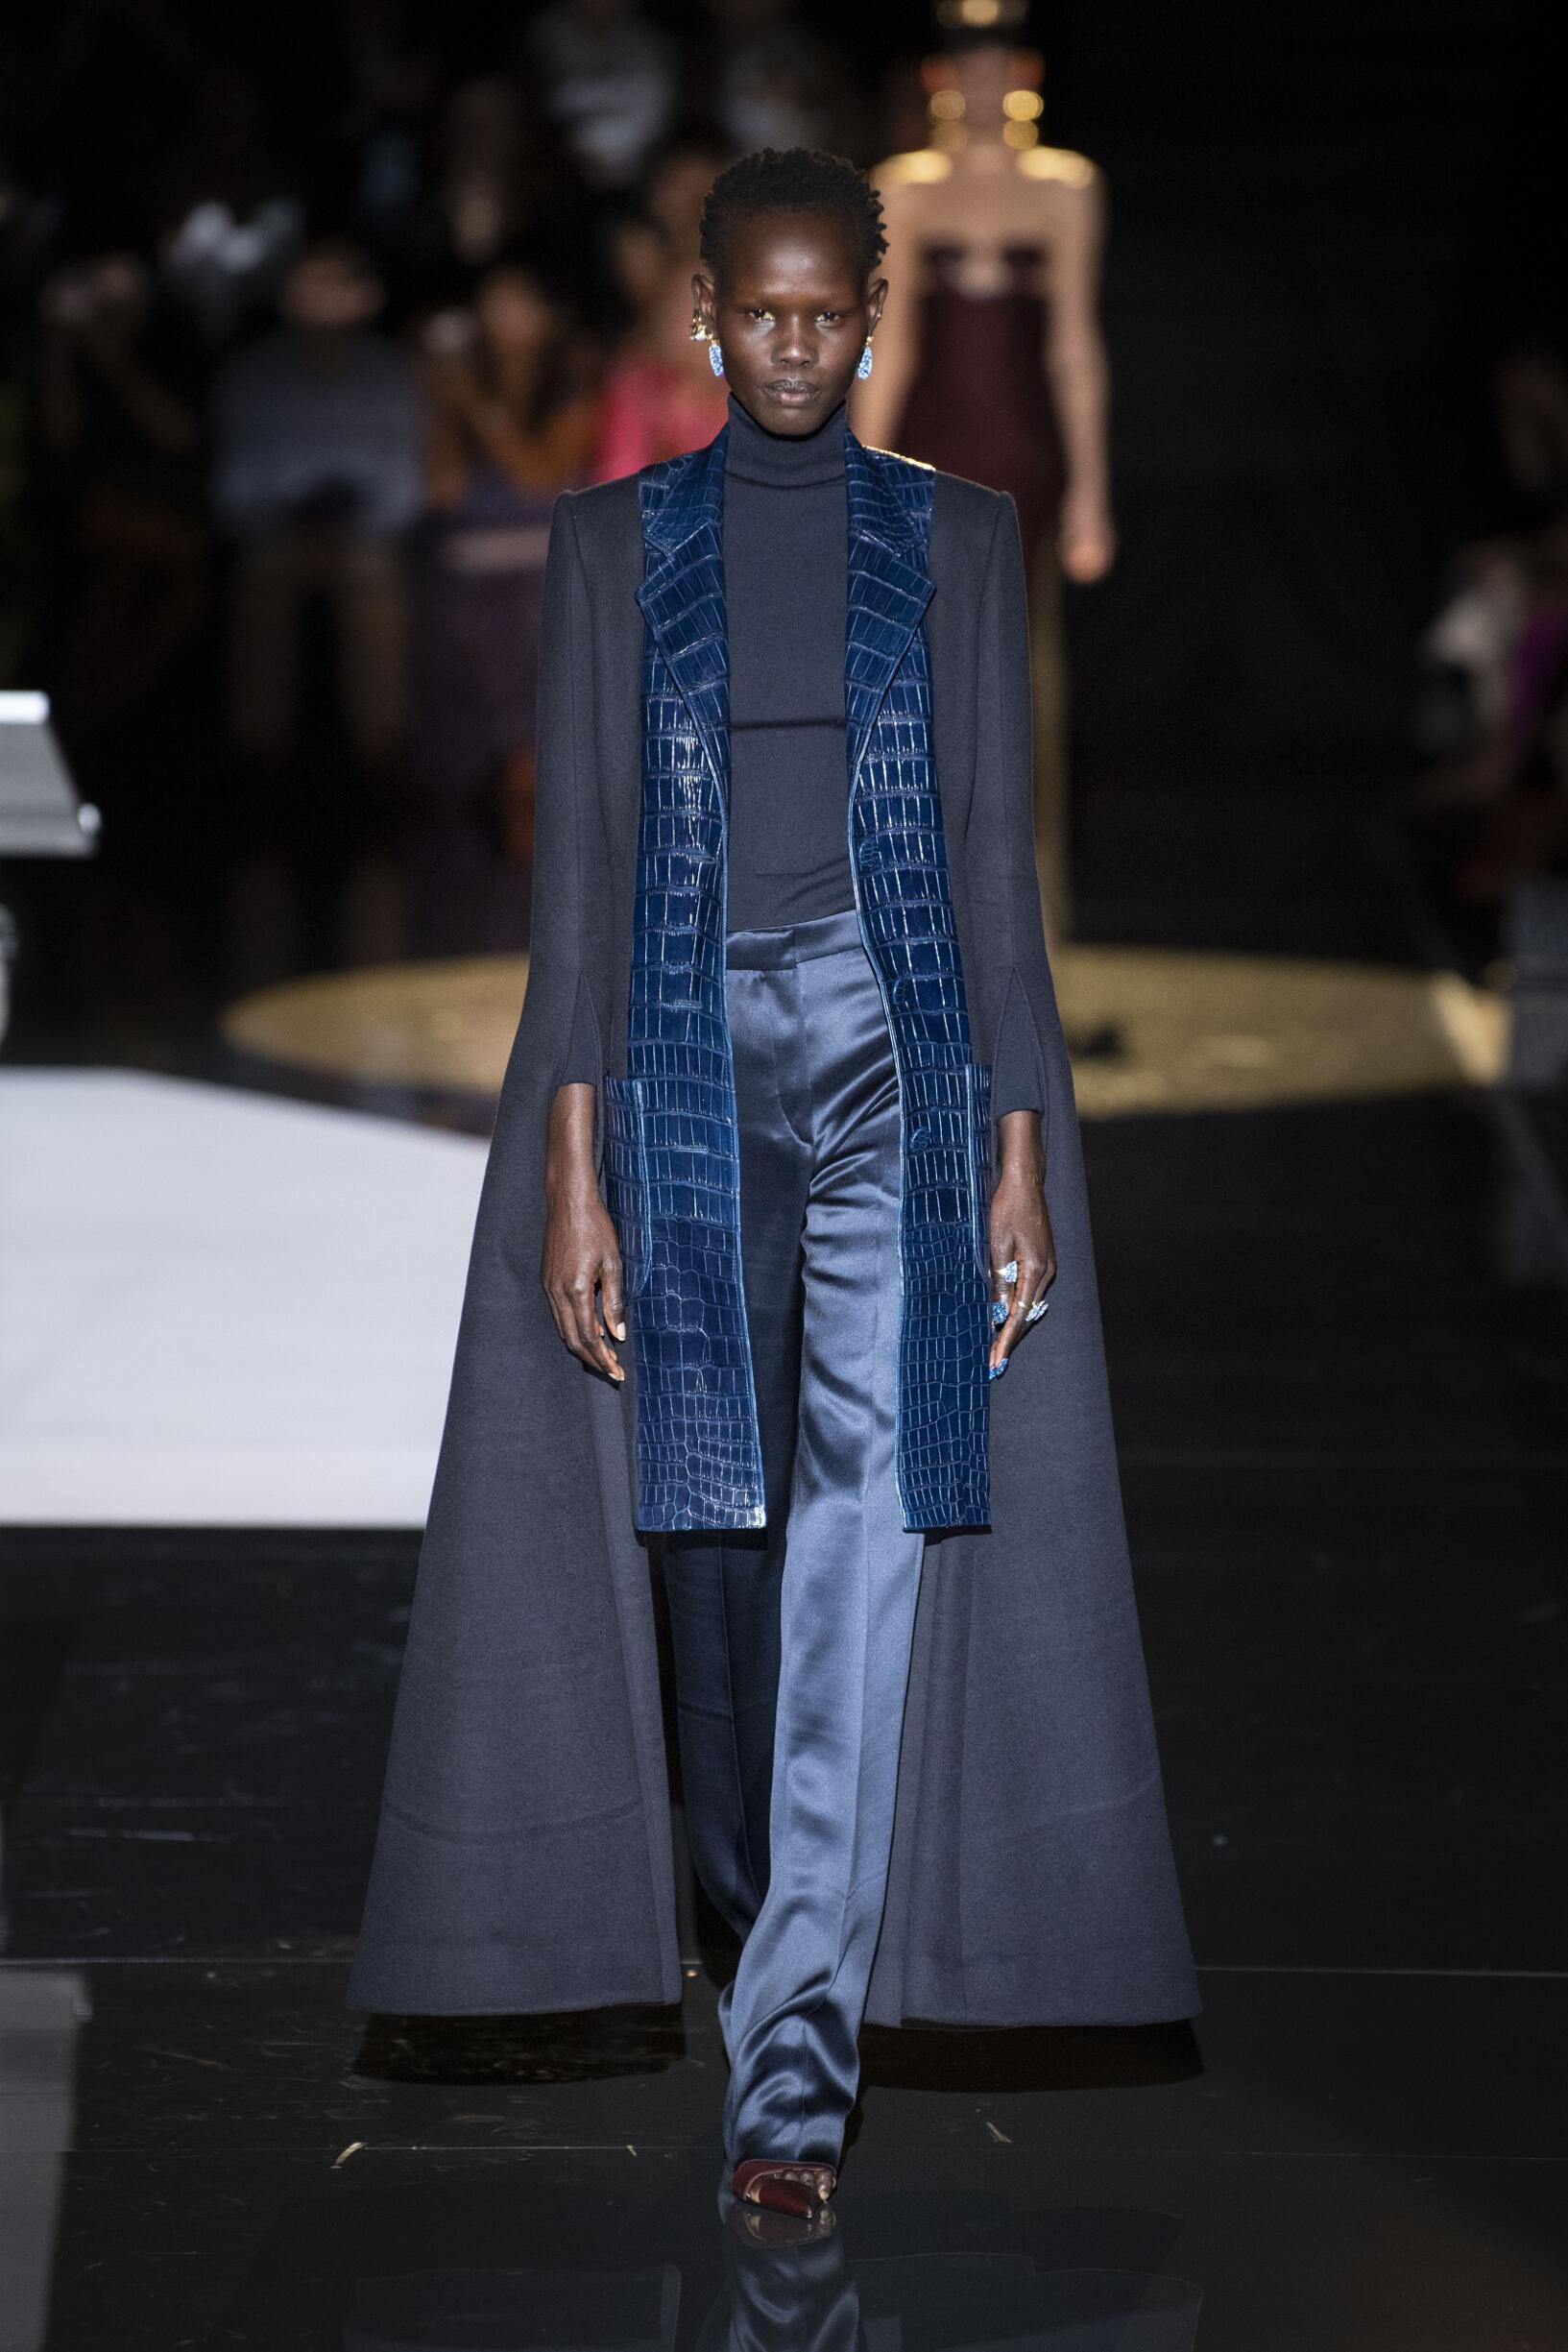 Fall 2019-20 Womenswear Schiaparelli Haute Couture